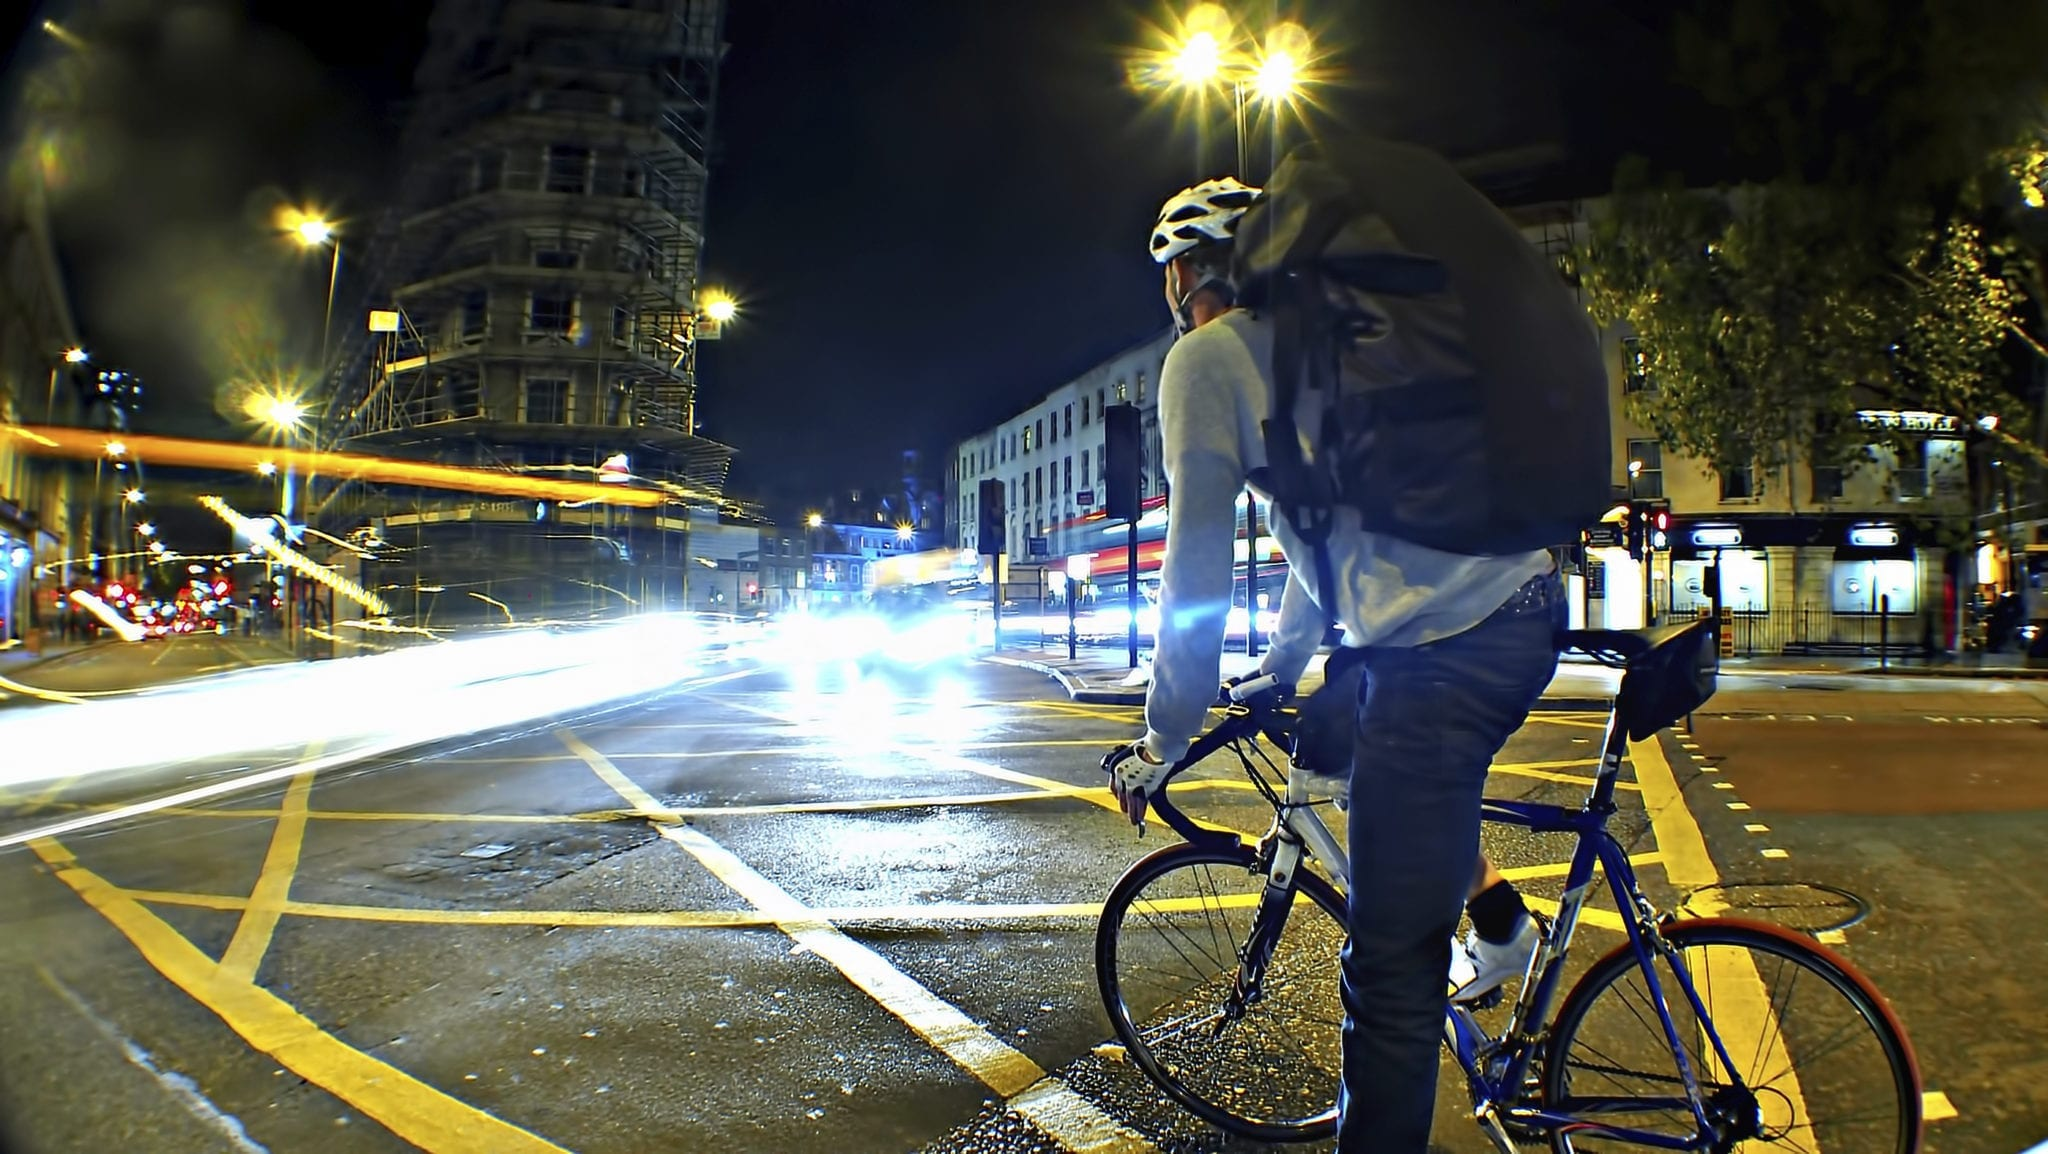 Man Riding Bicycle On City Street At Night Stock Photo